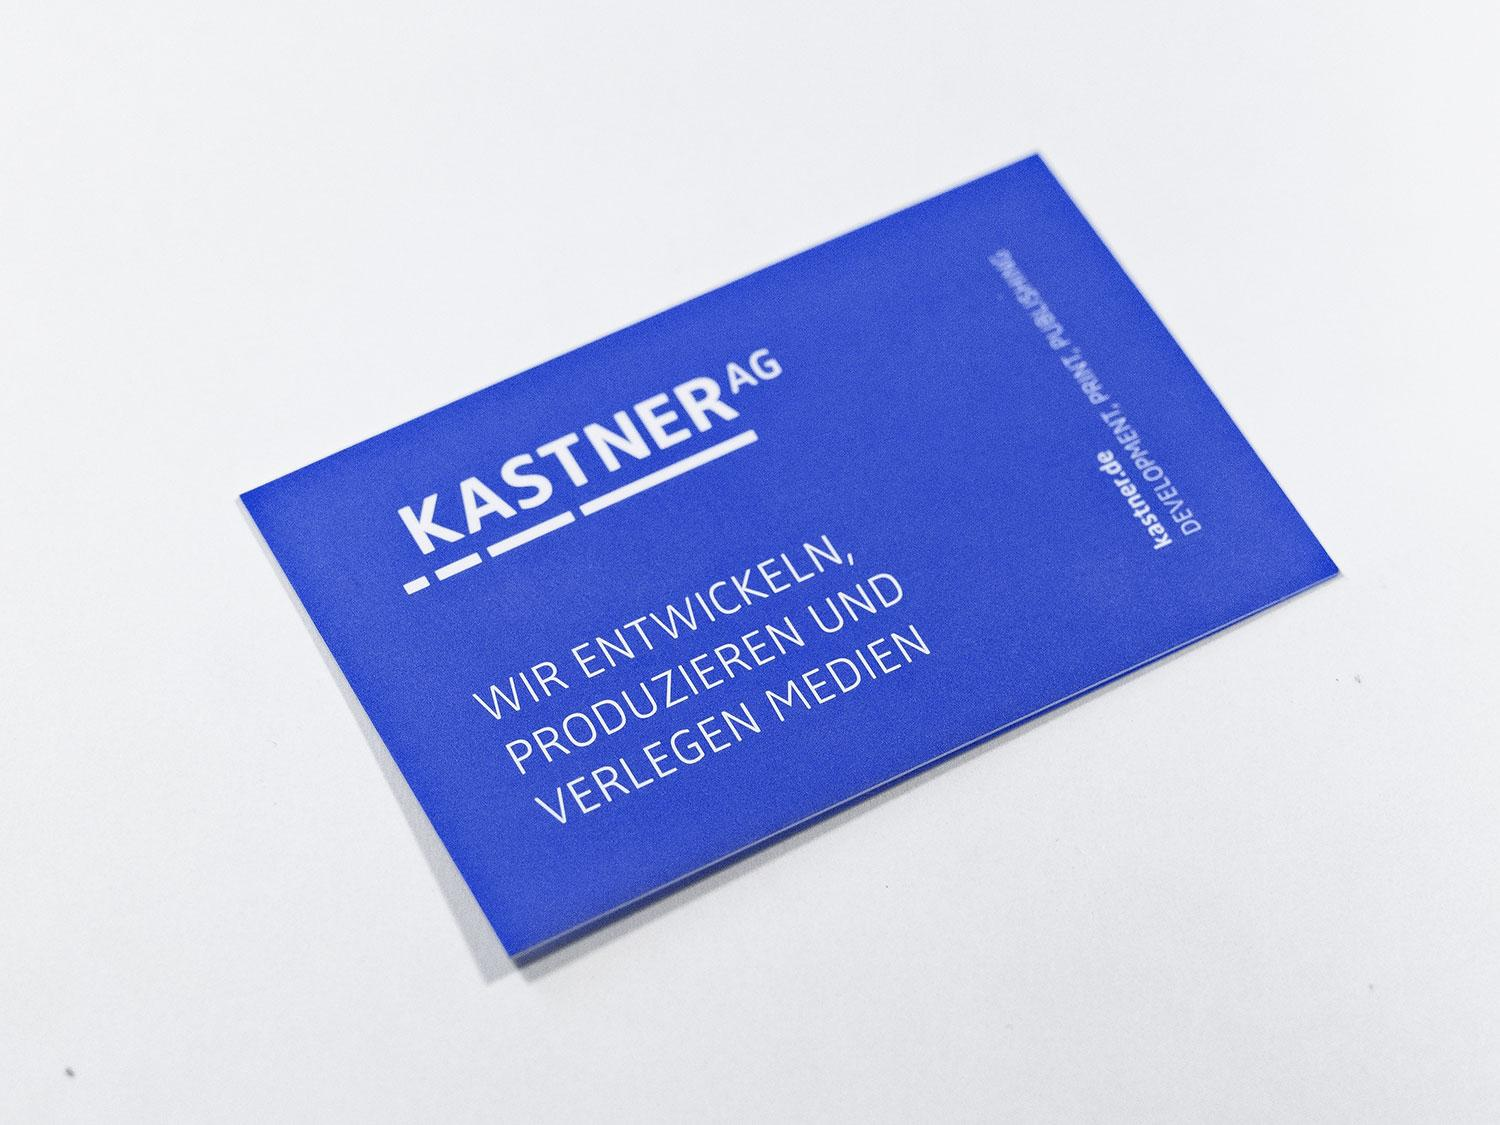 The picture shows communication material of the Kastner AG.